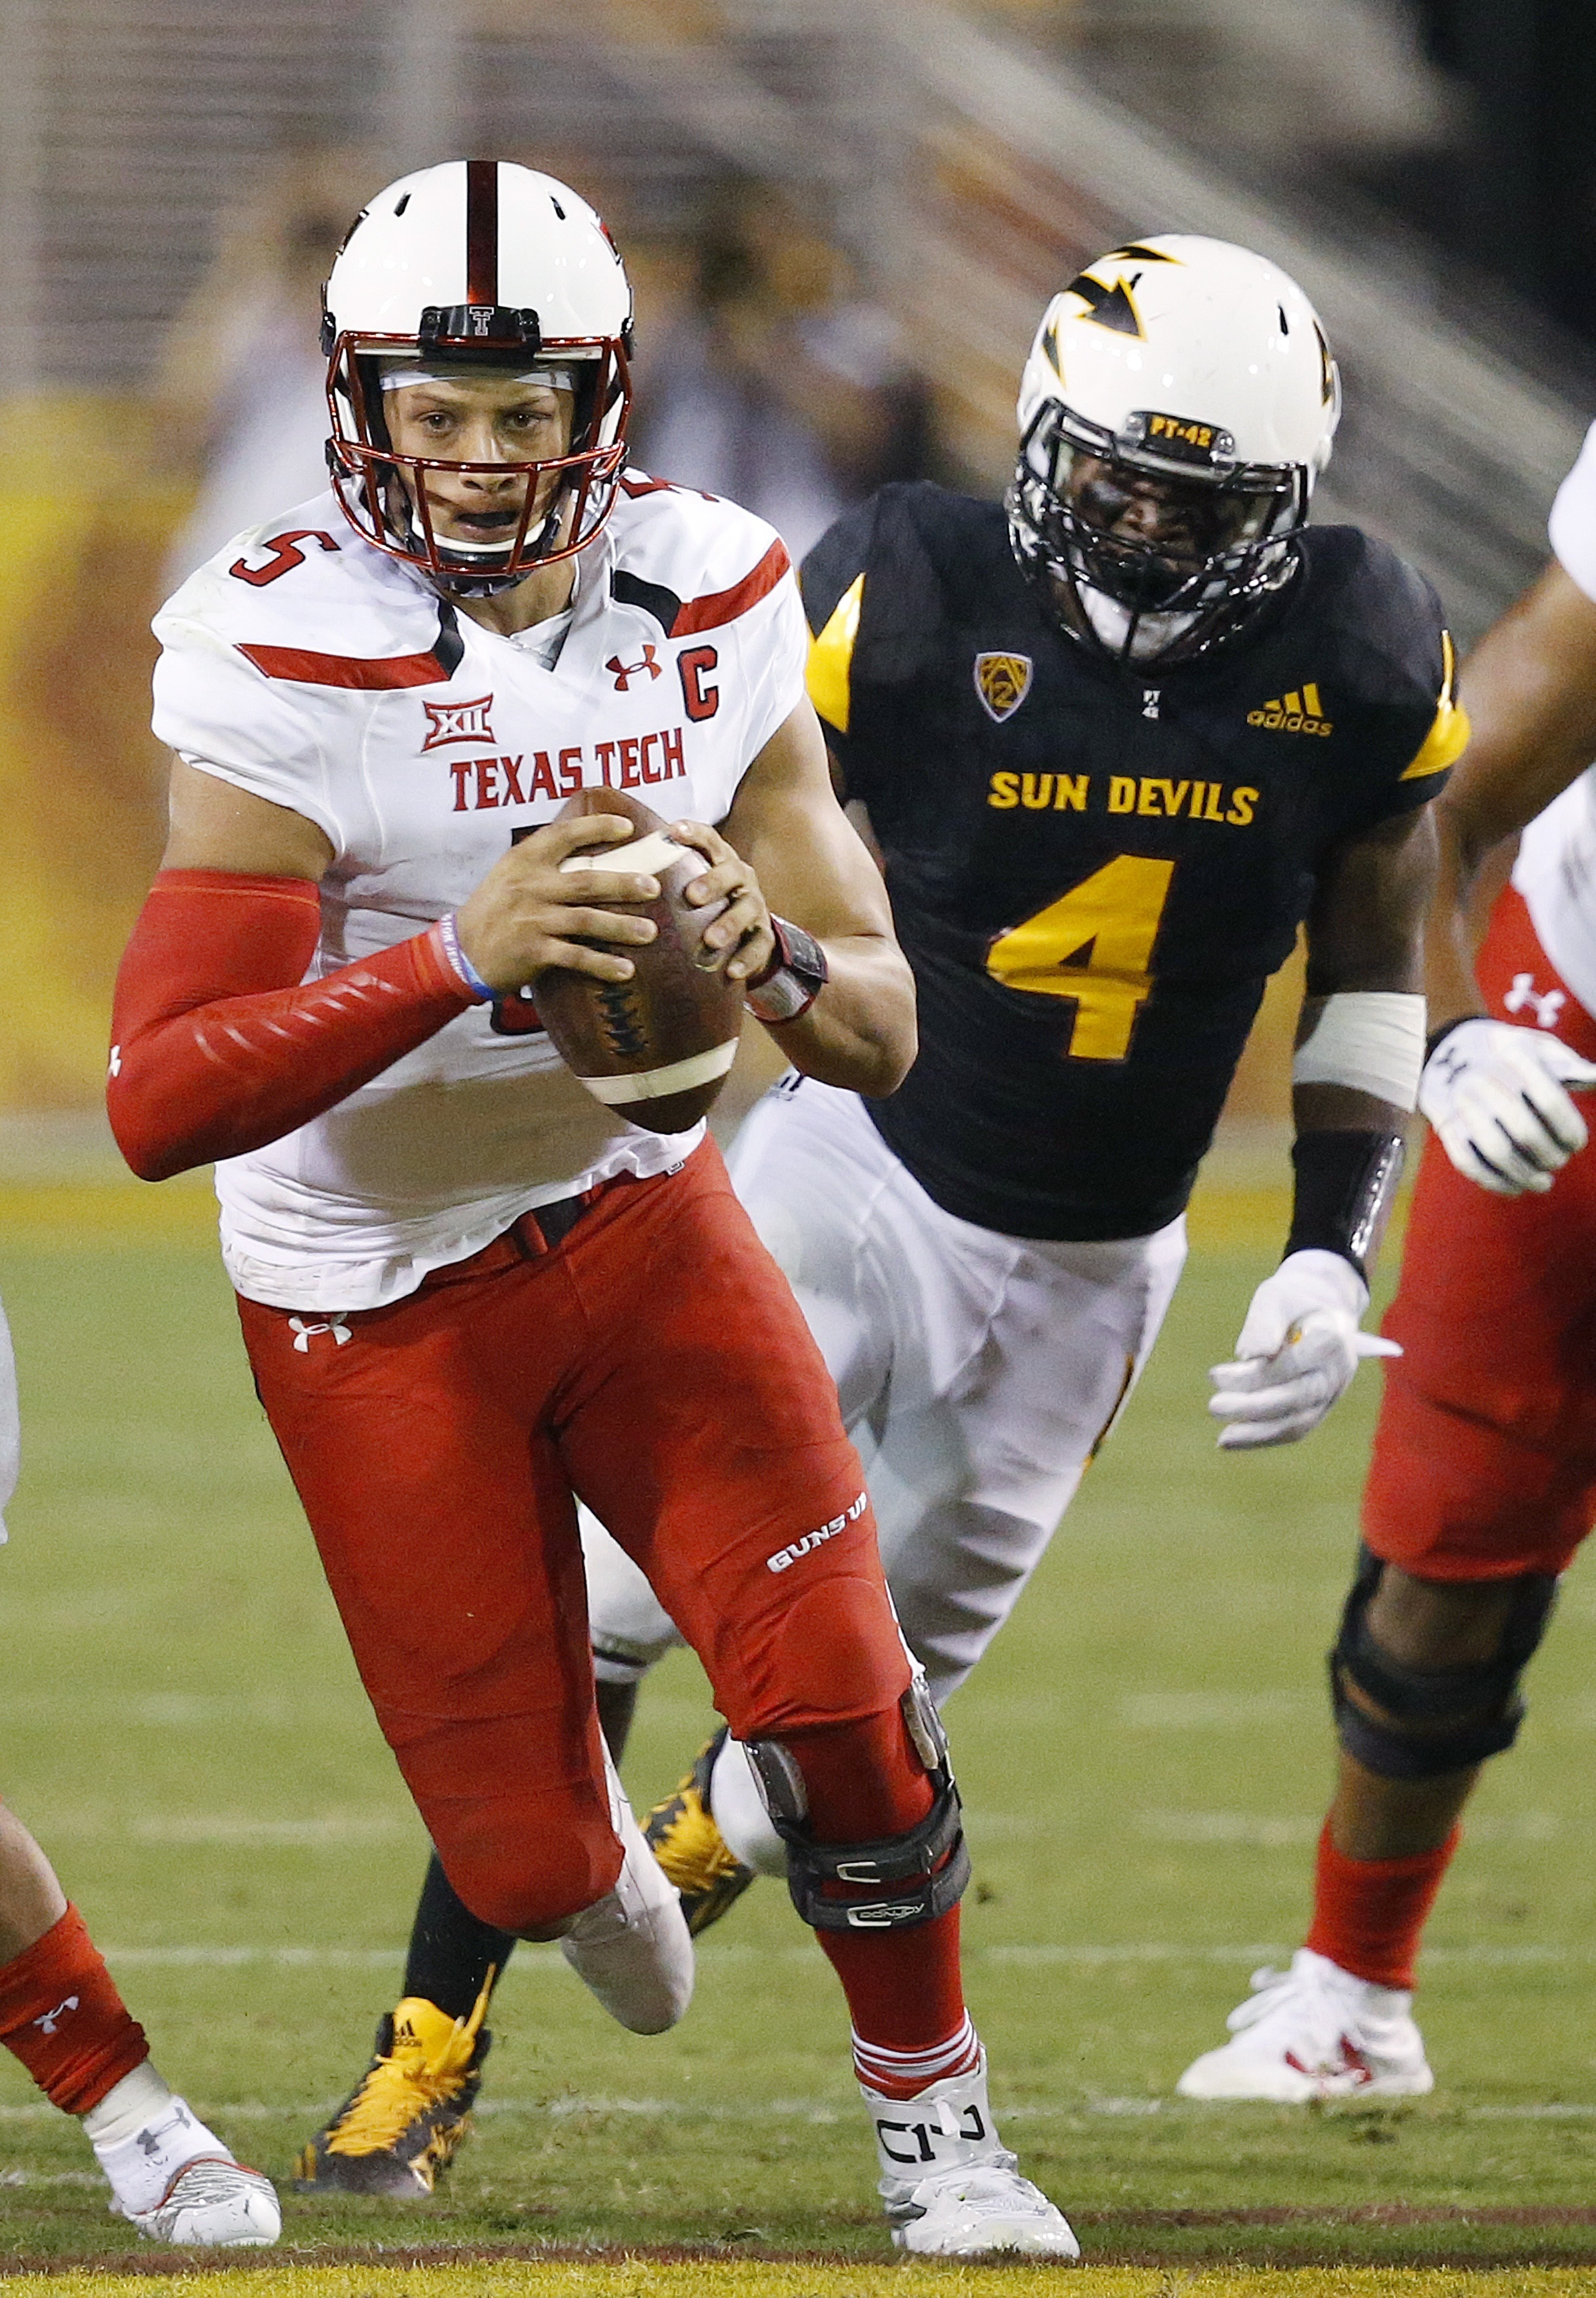 Texas Tech's Patrick Mahomes II, left, runs with the ball as he gets past Arizona State's Koron Crump (4) during the first half of an NCAA college football game Saturday, Sept. 10, 2016, in Tempe, Ariz. (AP Photo/Ross D. Franklin)